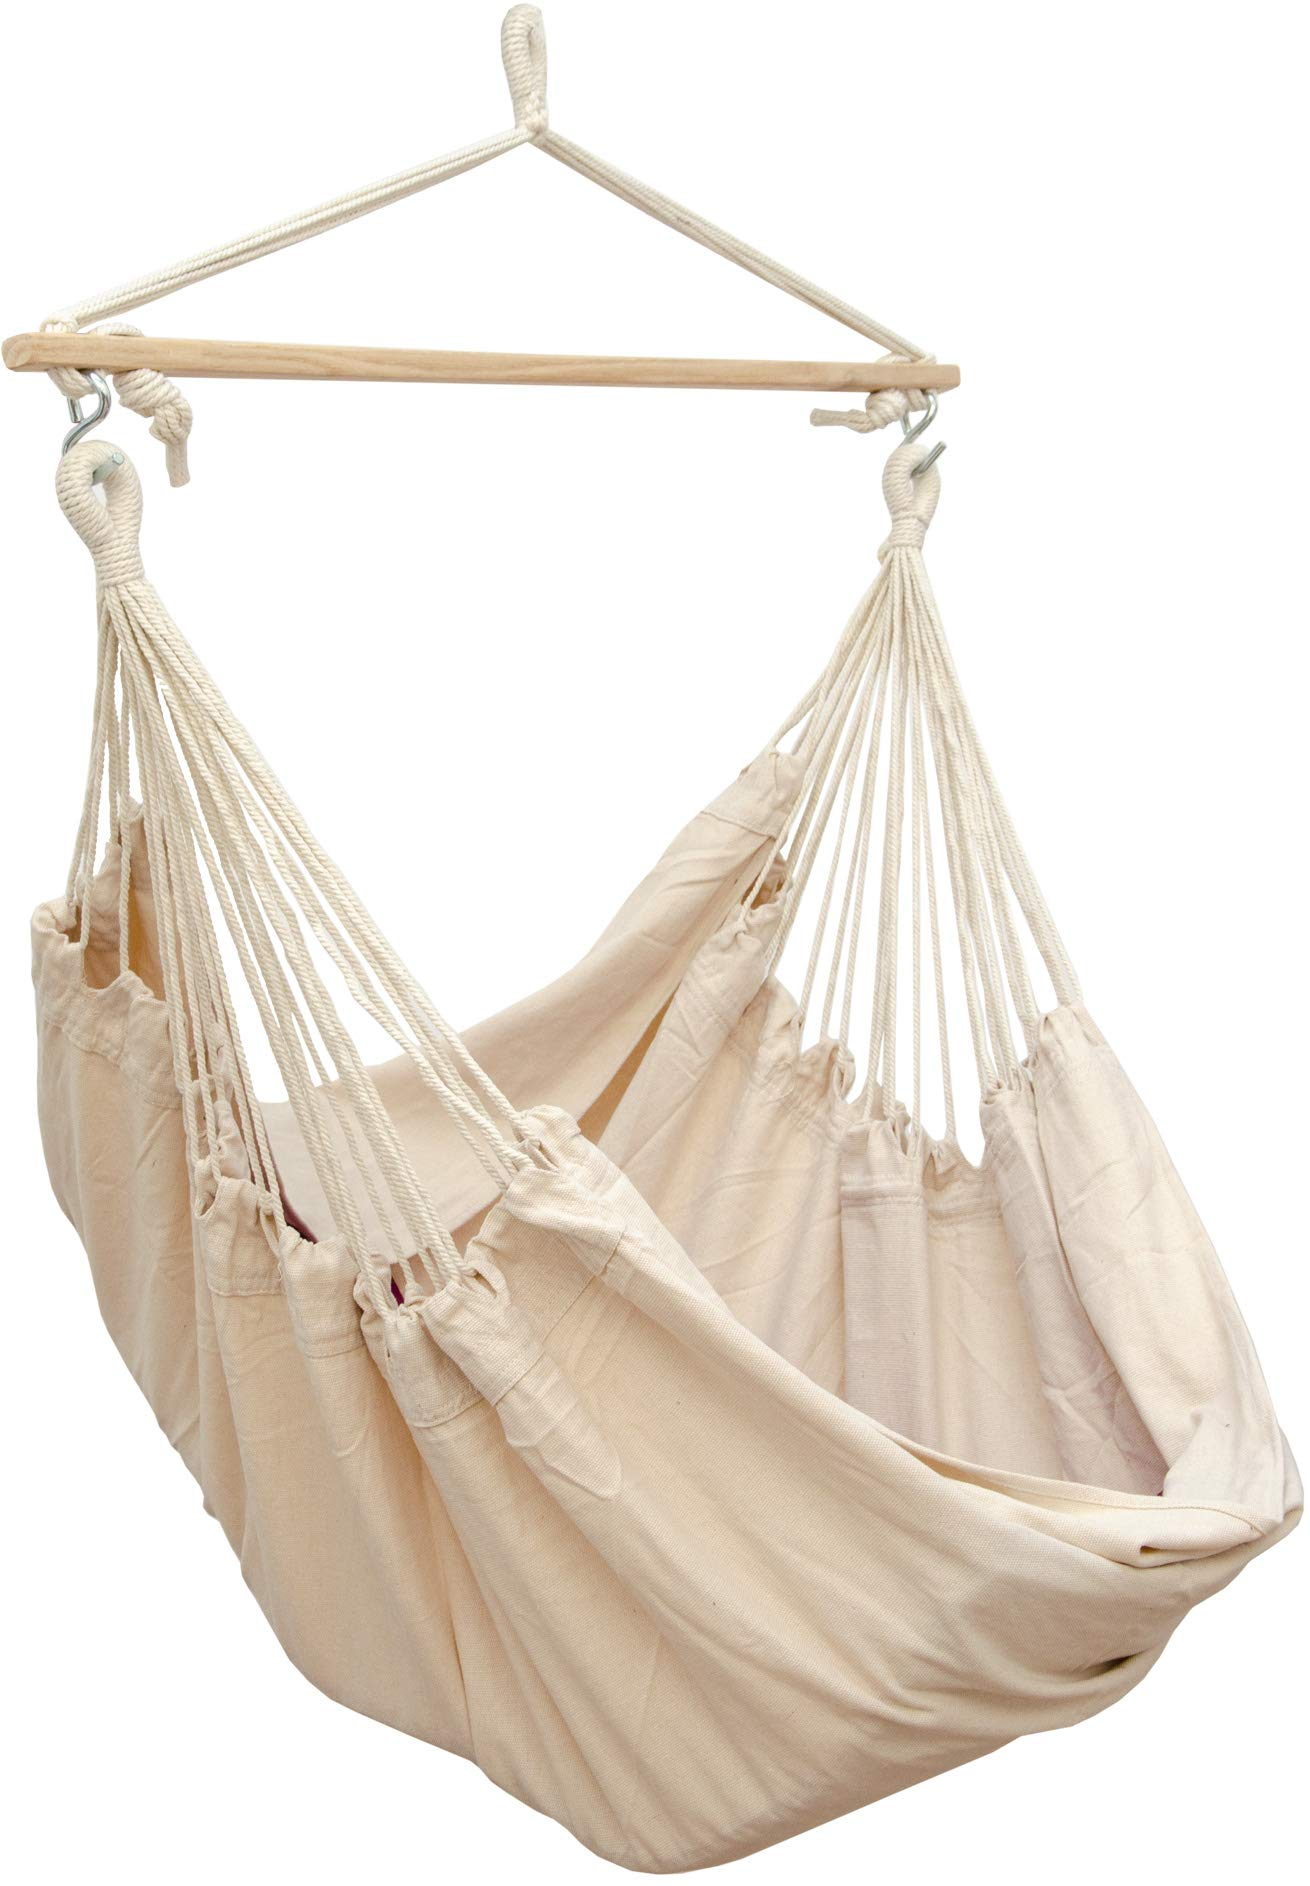 AMANKA Innovative XXL Swing Chair 185x130cm Hanging Seat made of cloth Beige AMANKA SAFER: INNOVATIVE ANTI-SLIP SYSTEM - no risk that the hammock slips off the spreader-bar: the ropes are firmly fixed to the wooden bar and the large canvas is hung with two sturdy metal hooks EXTRA LARGE PIECE OF CLOTH - the strong canvas is made of natural cotton. It is large approx. 185 x 130 cm, so there is plenty of space to sit and even lie down, both alone and in 2 people - suitable for adults and kids SINGLE-SPREADER BAR MADE OF WOOD - the longer the spreader bar, the more comfortable the hammock. Our four-square bar is 115 cm long! It will soon become your favorite spot for reading, dreaming and playing - perfect even as a children's swing 1